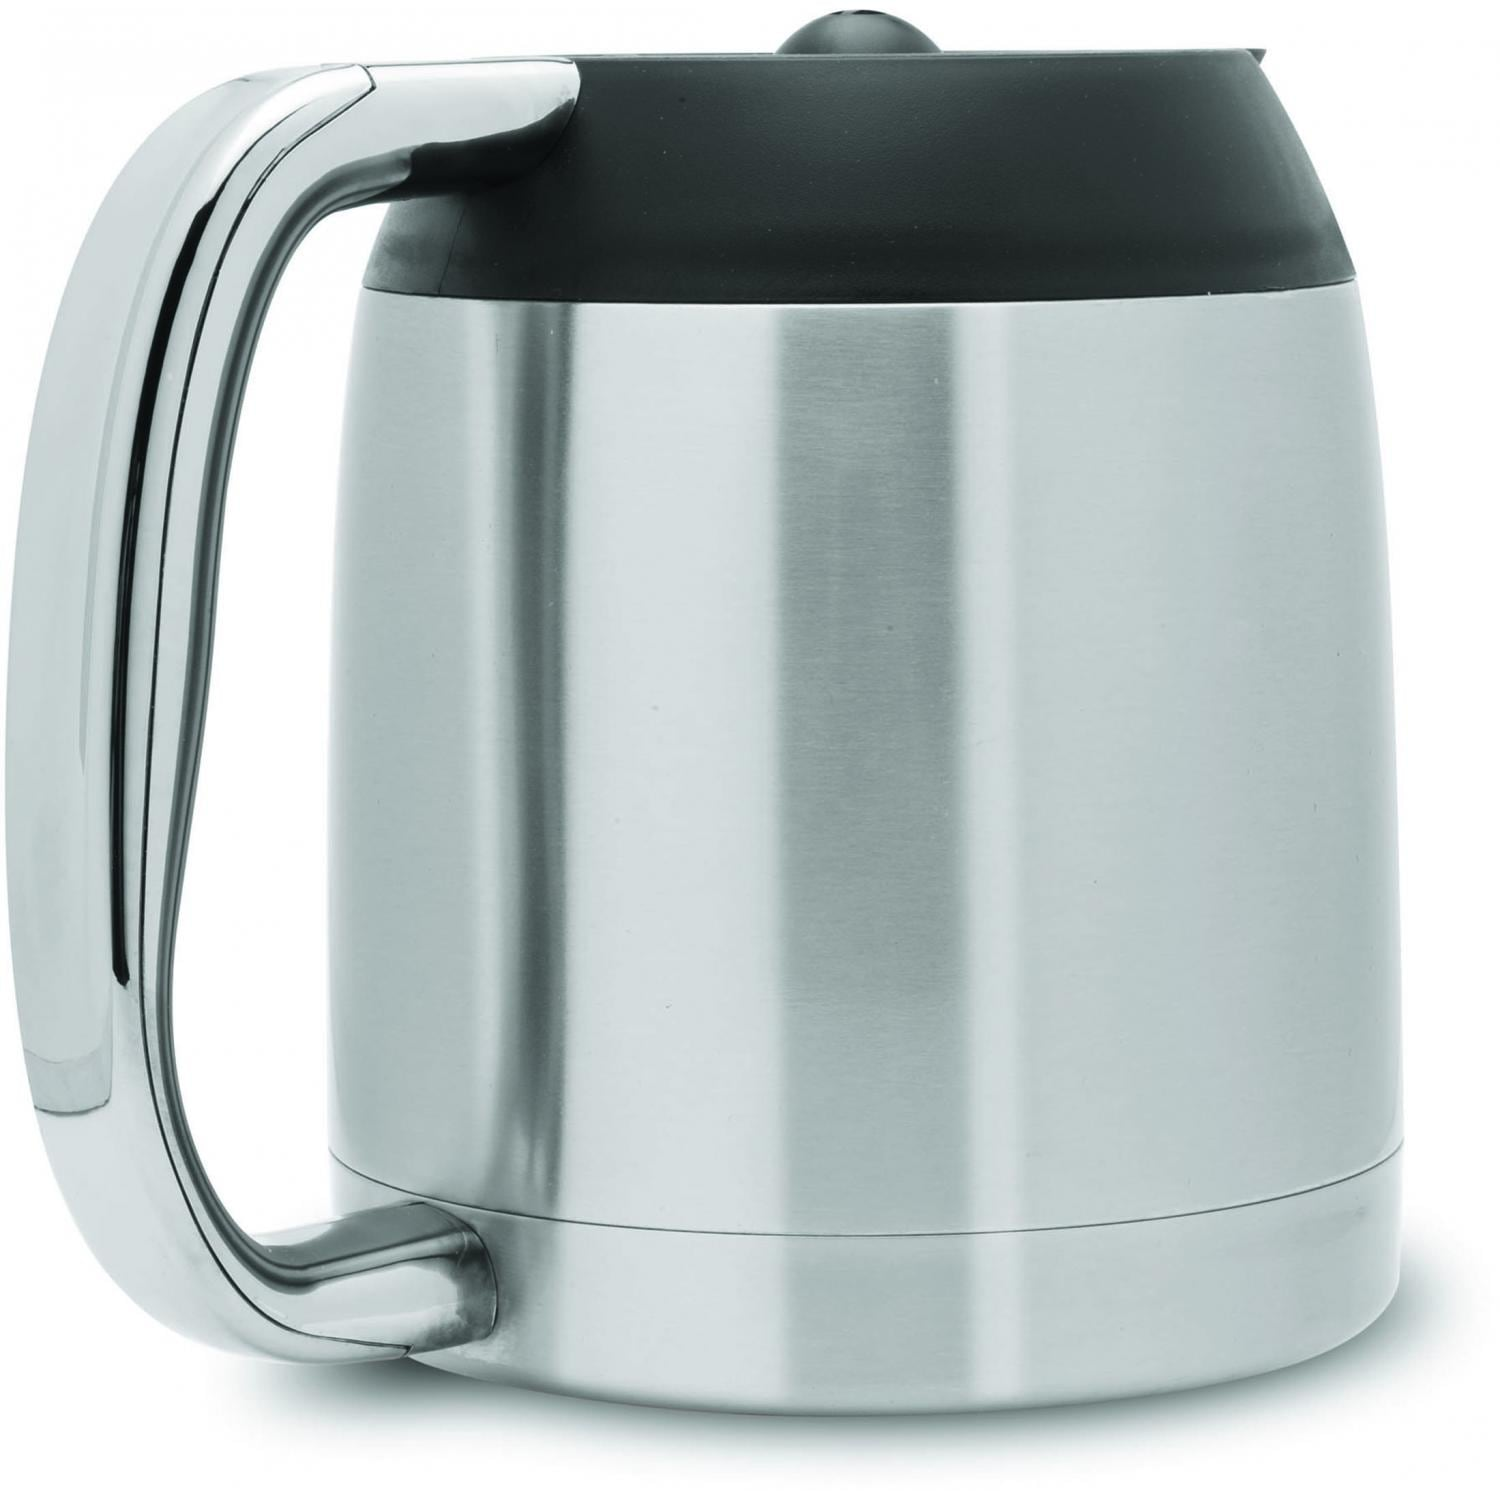 Programmable Coffee Maker Stainless Steel Carafe : Viking VCCM12MS 12-Cup Programmable Coffee Maker : ShoppersChoice.com